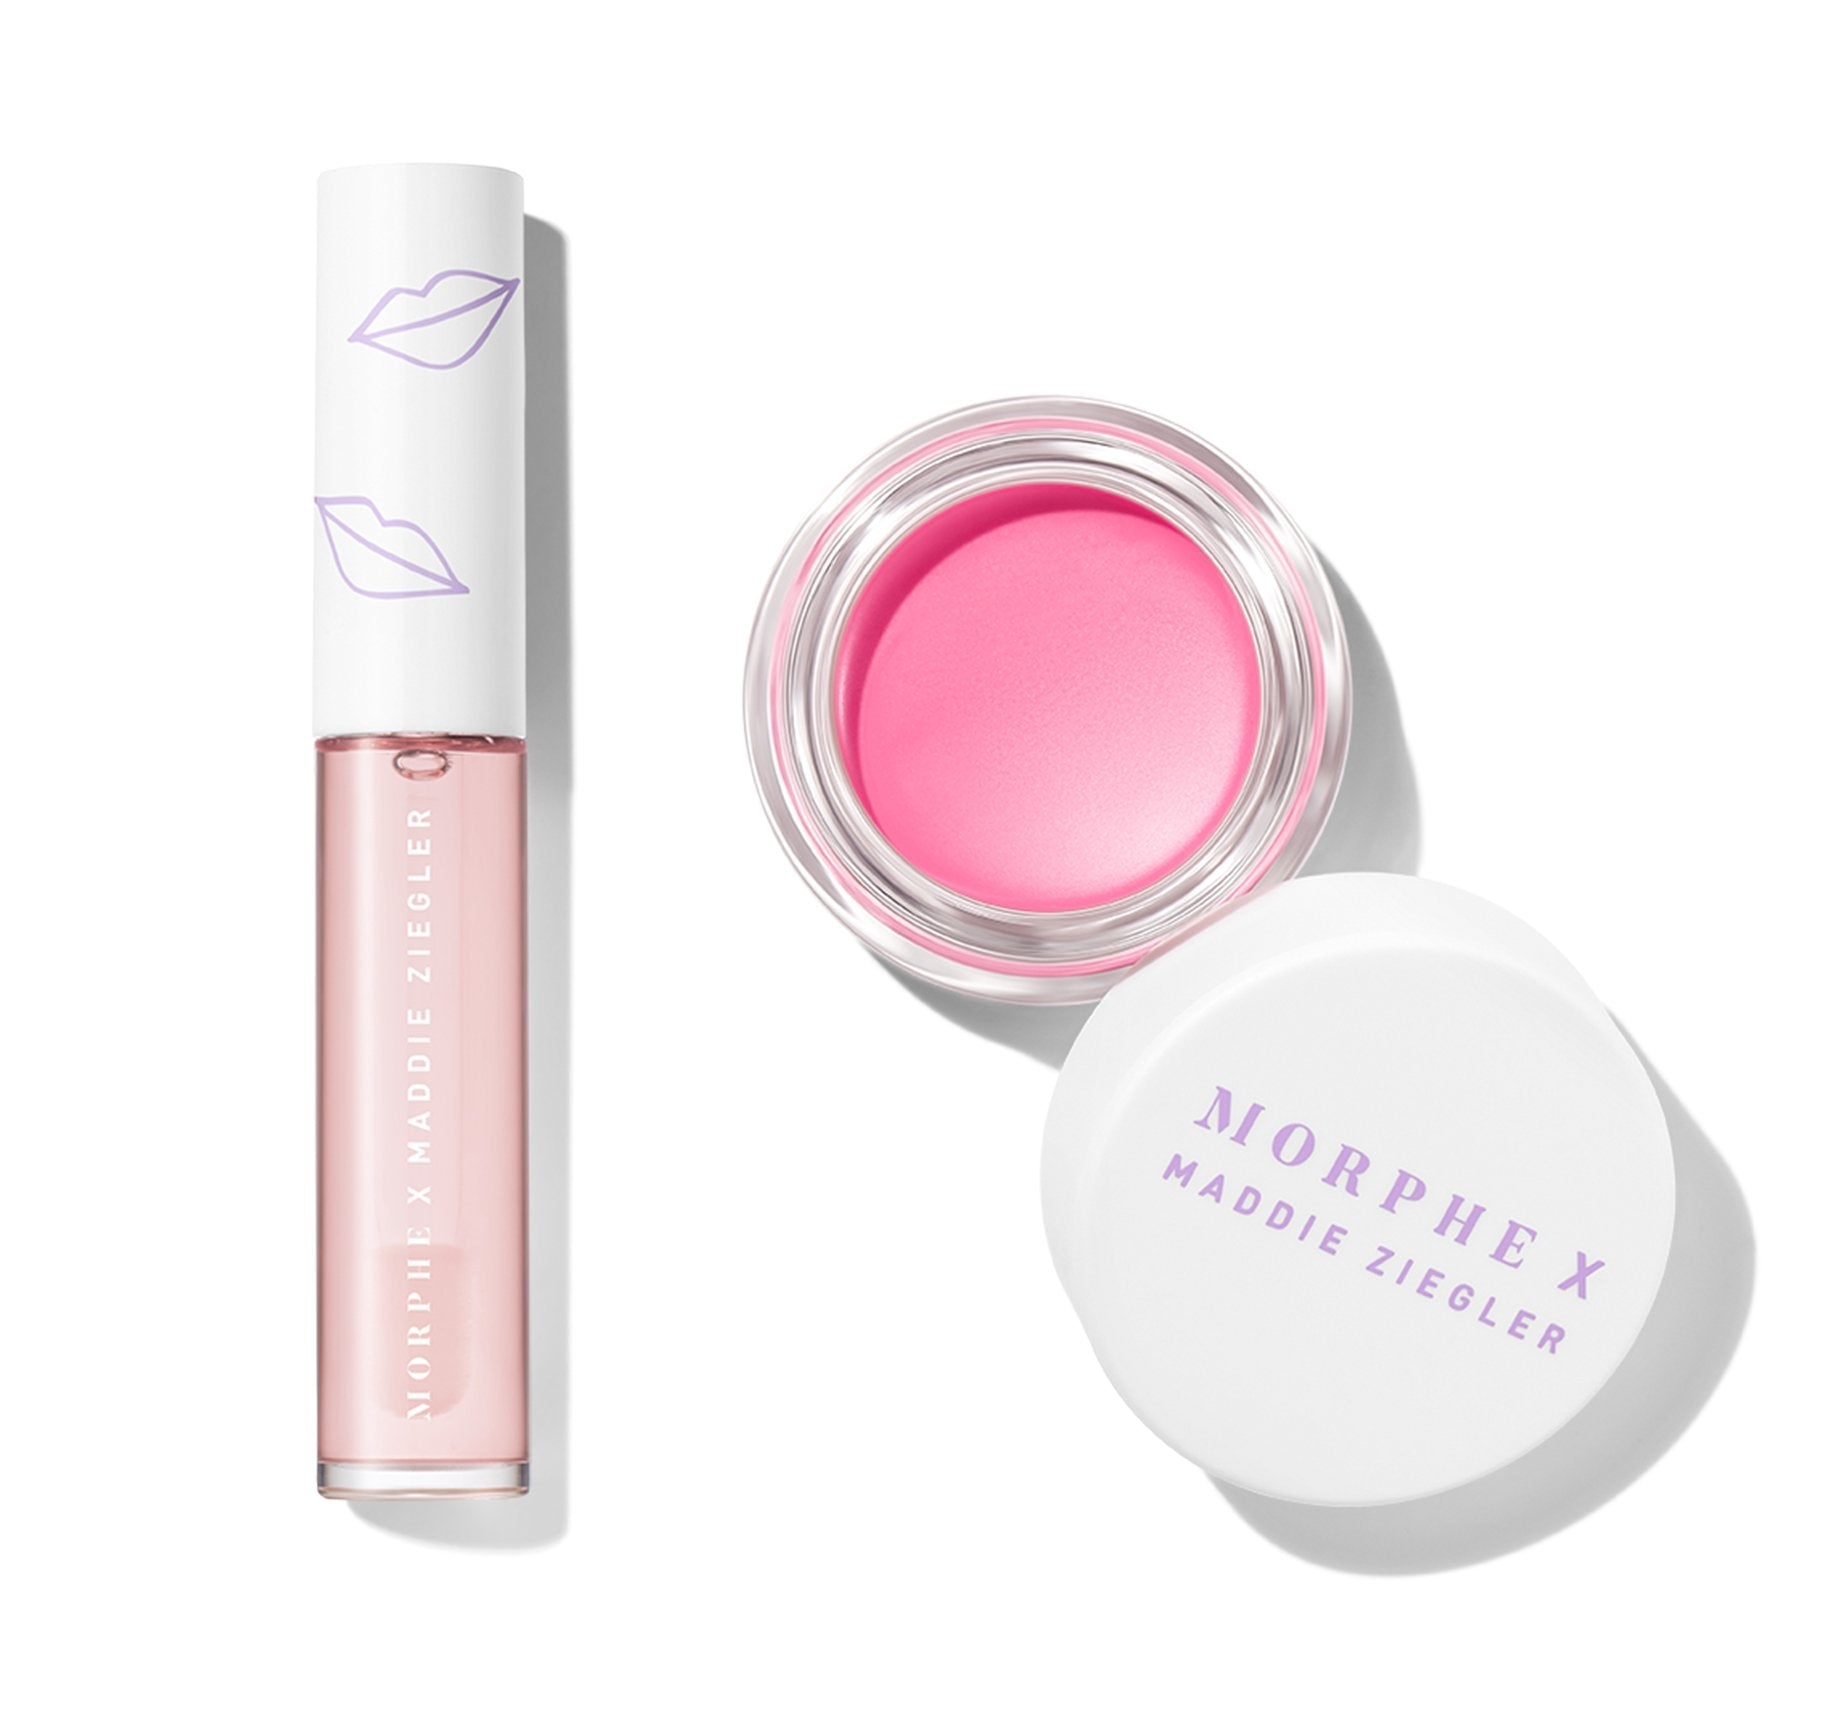 MORPHE X MADDIE ZIEGLER PINK ABOUT IT LIP & CHEEK DUO, view larger image